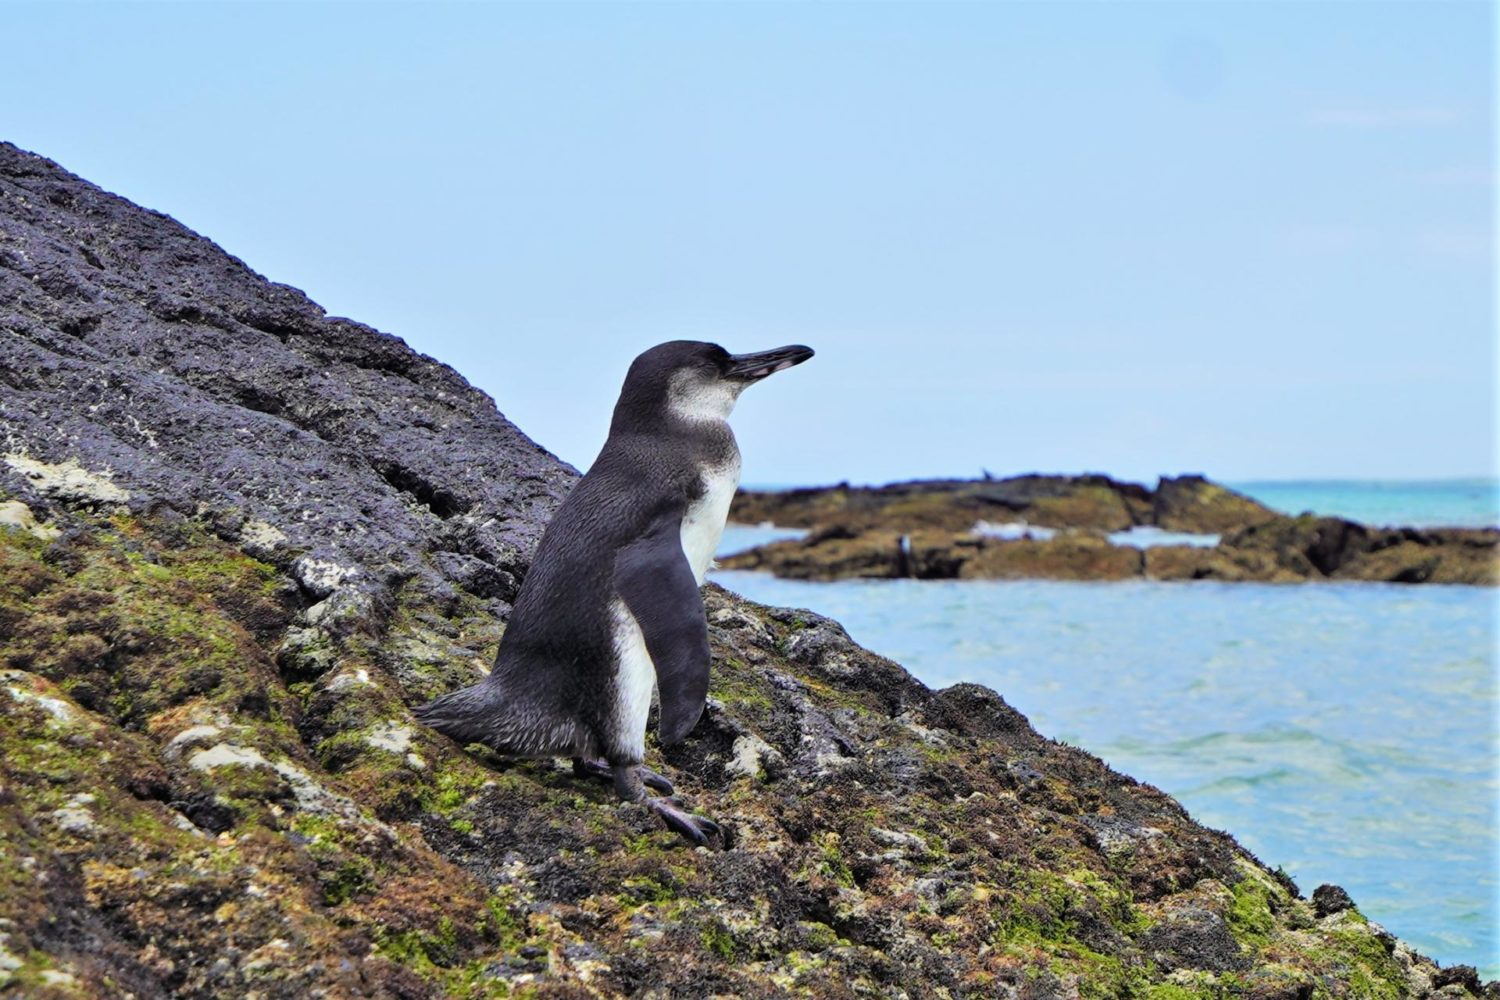 A Galapagos penguin by the seaside